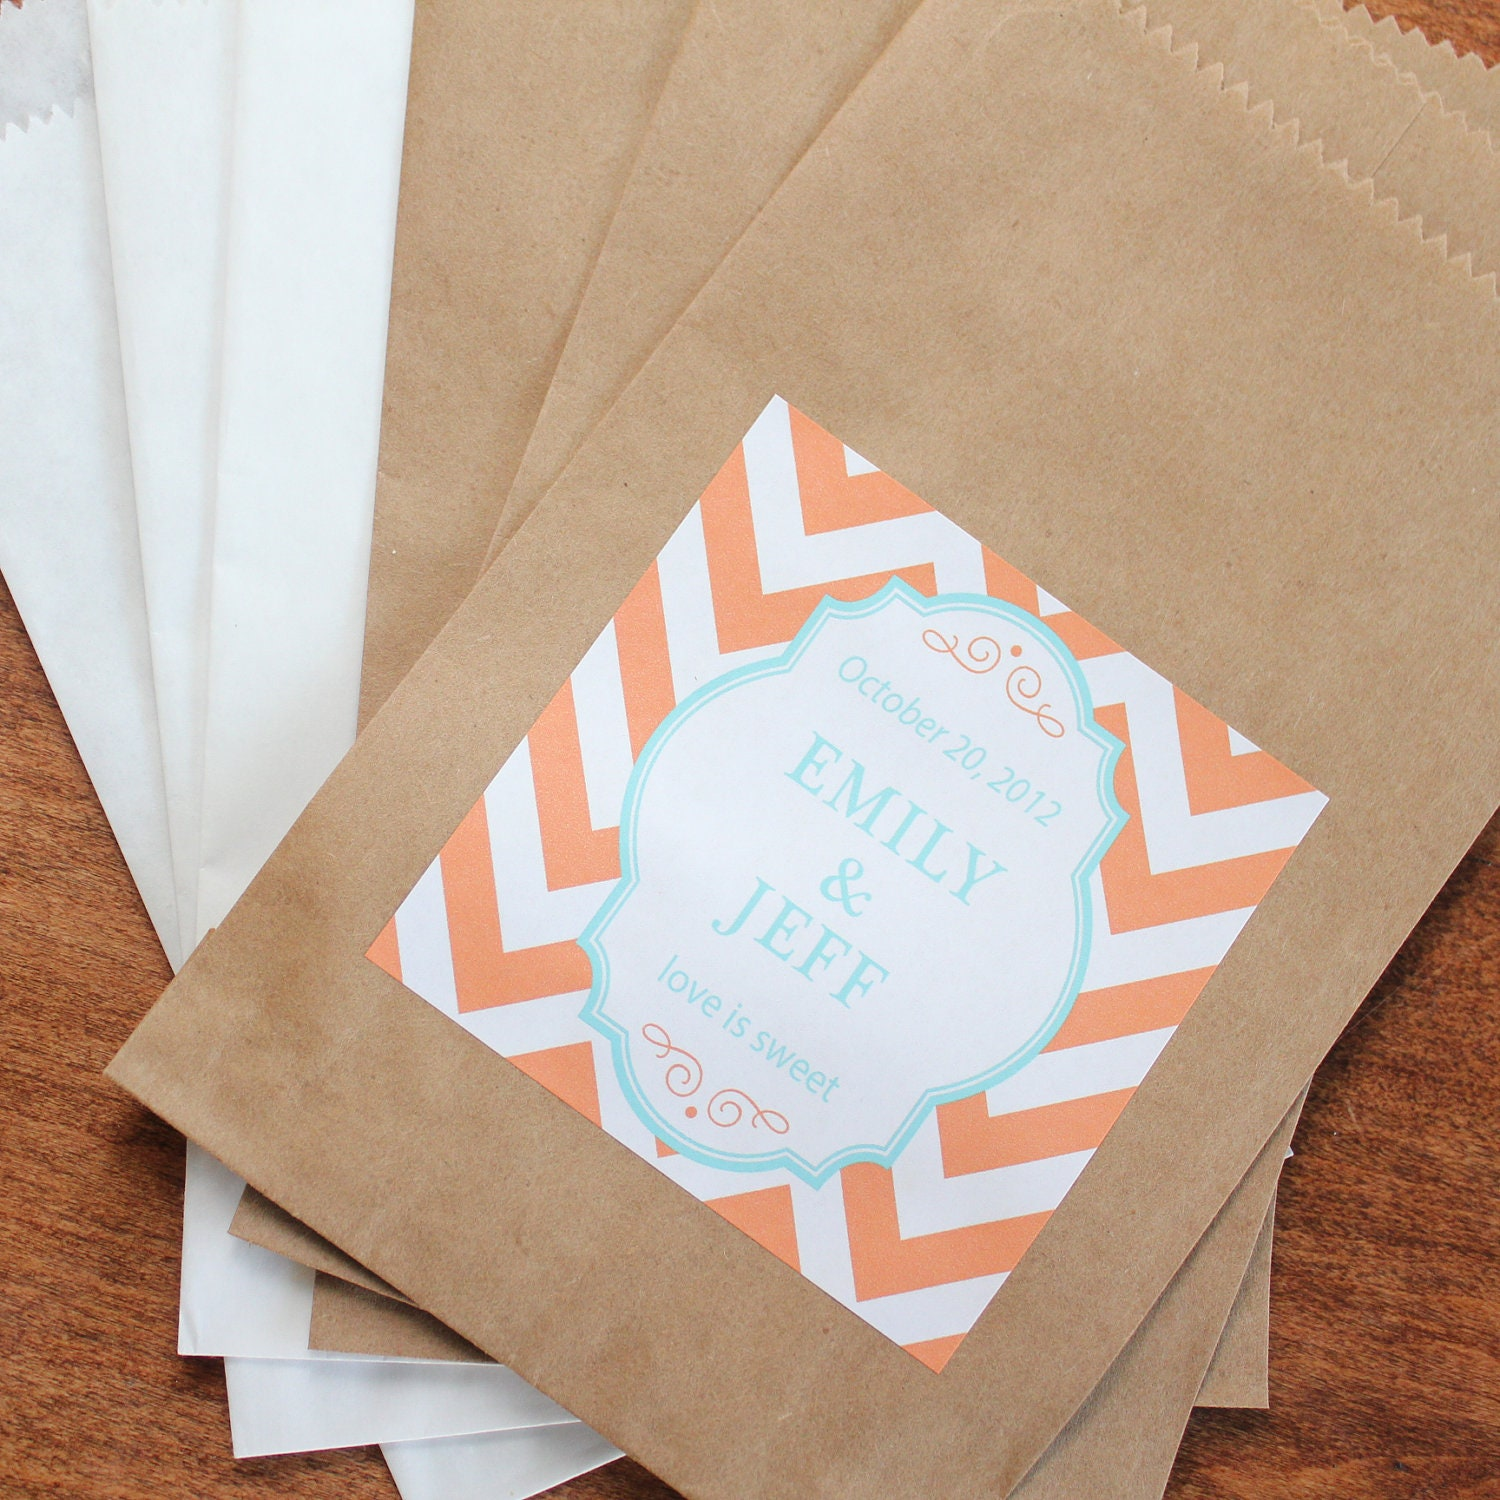 Wedding Favor Bags For Candy : 24 Wedding Favor Bags with Personalized Chevron by thefavorbox